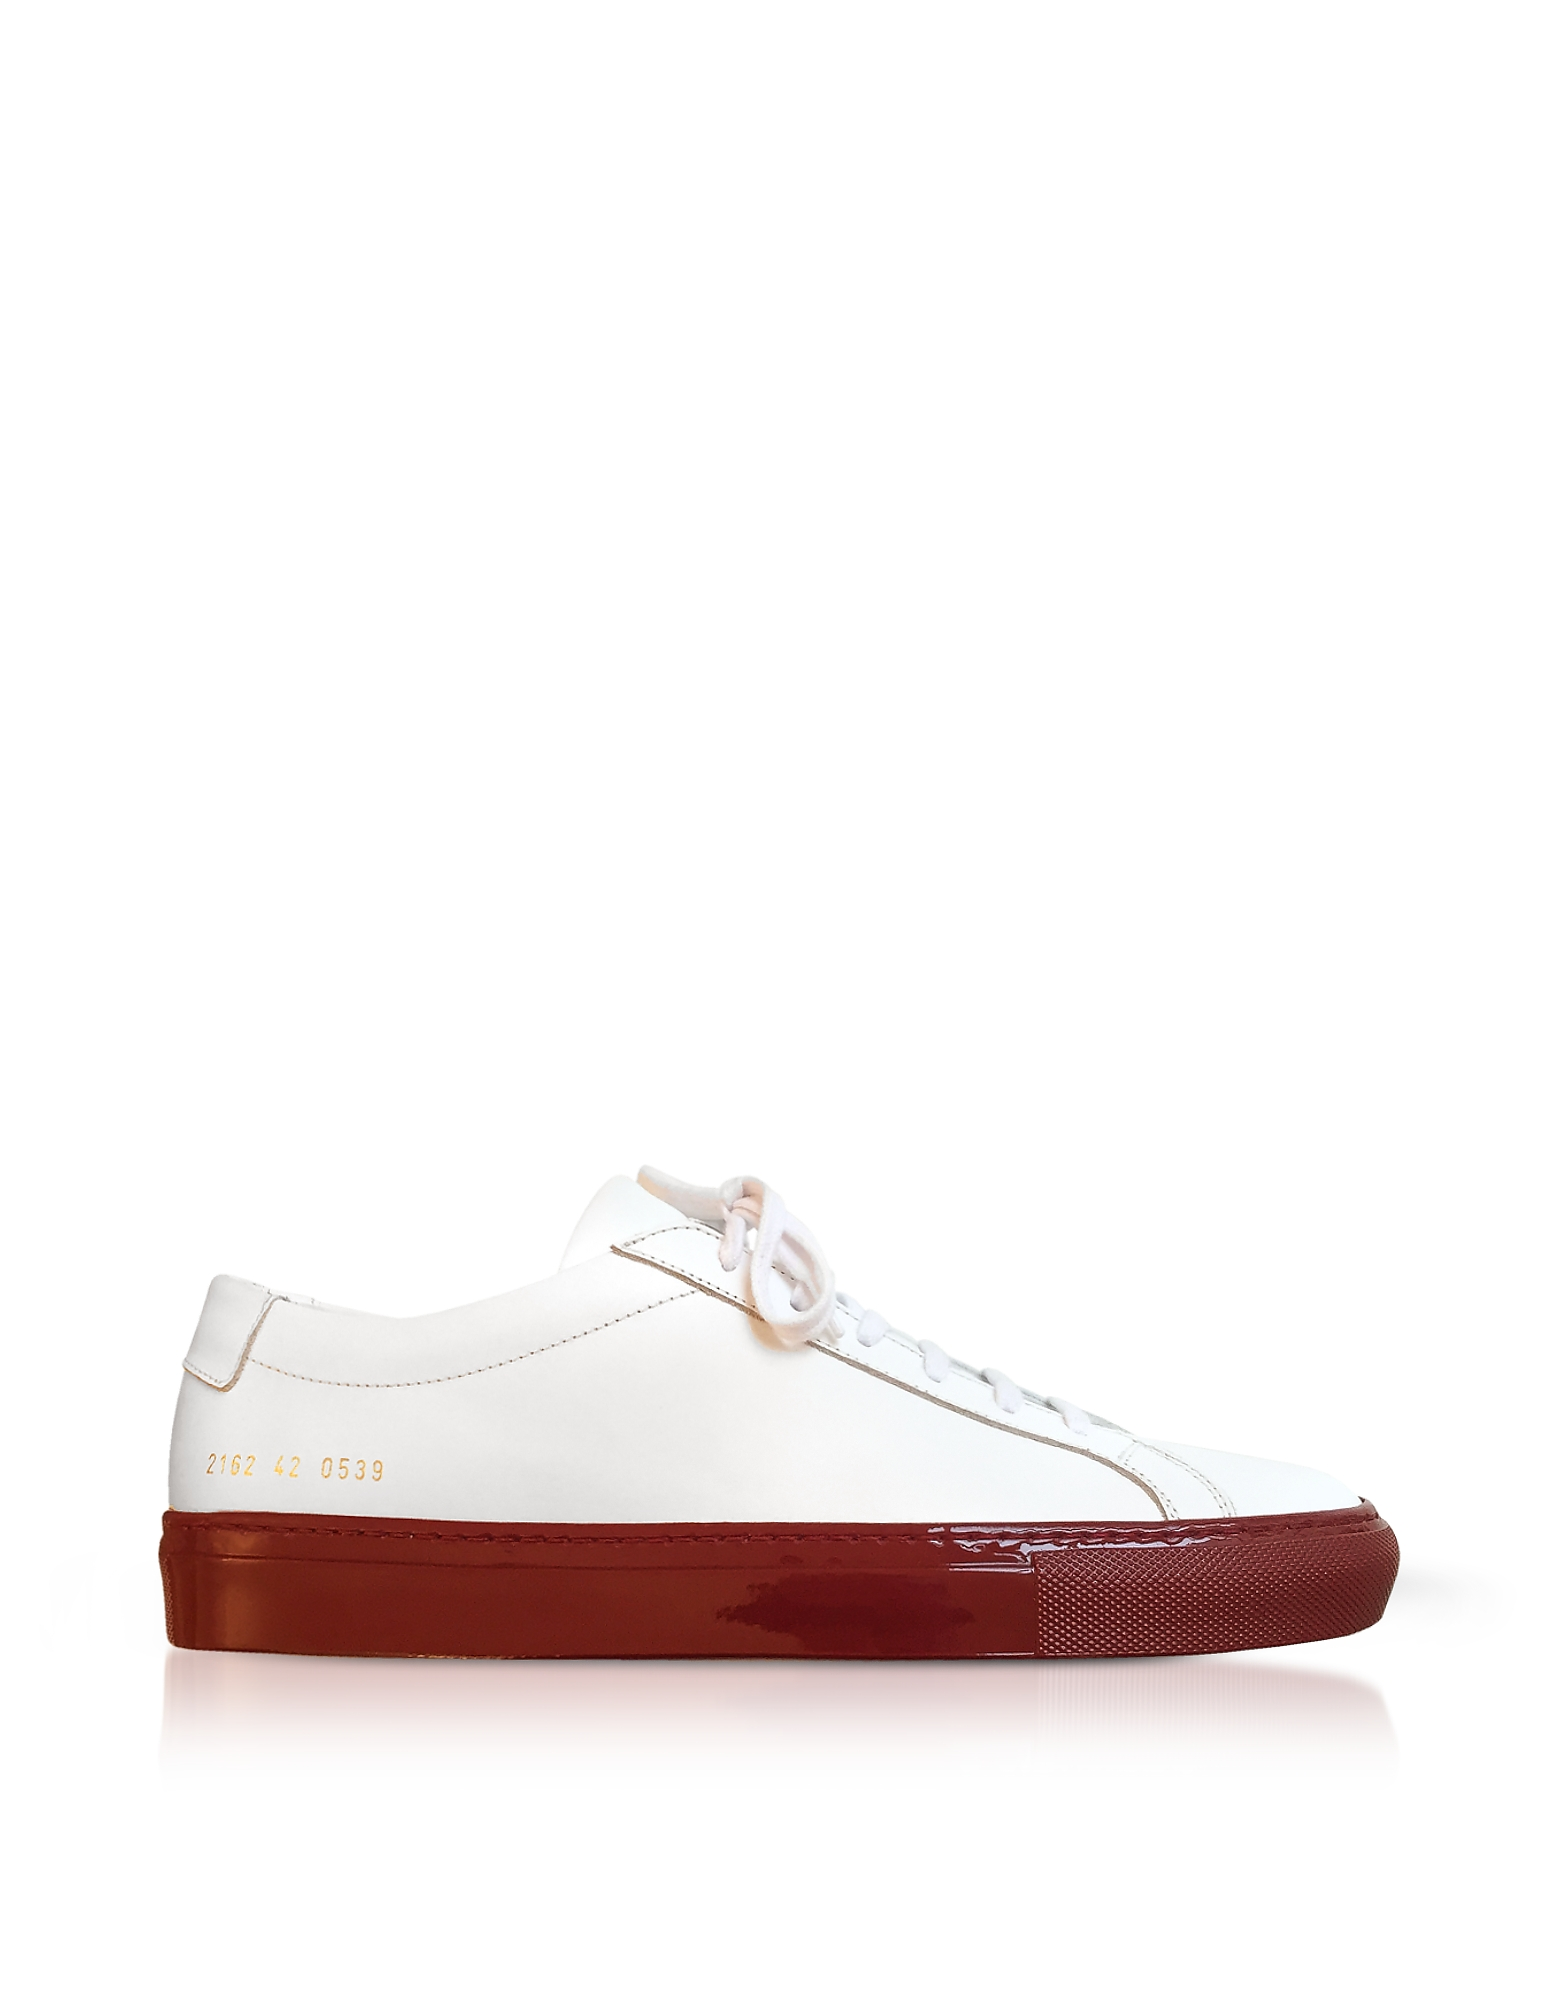 Achilles Sneakers Low Top Uomo in Pelle Bianca con Suola Rossa